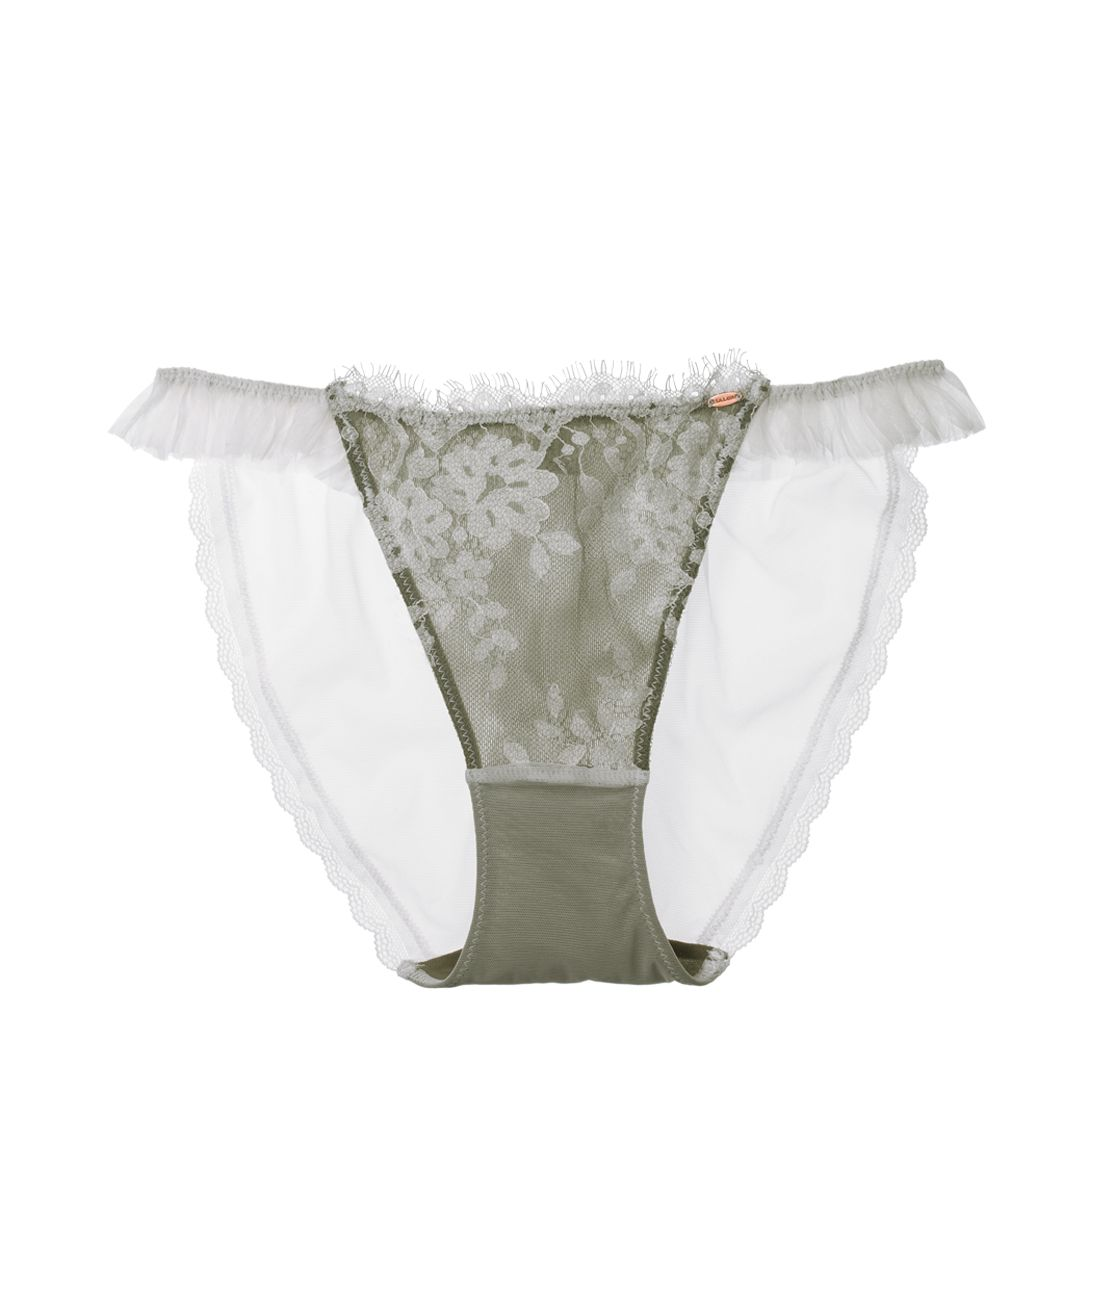 Antique Flower Panty